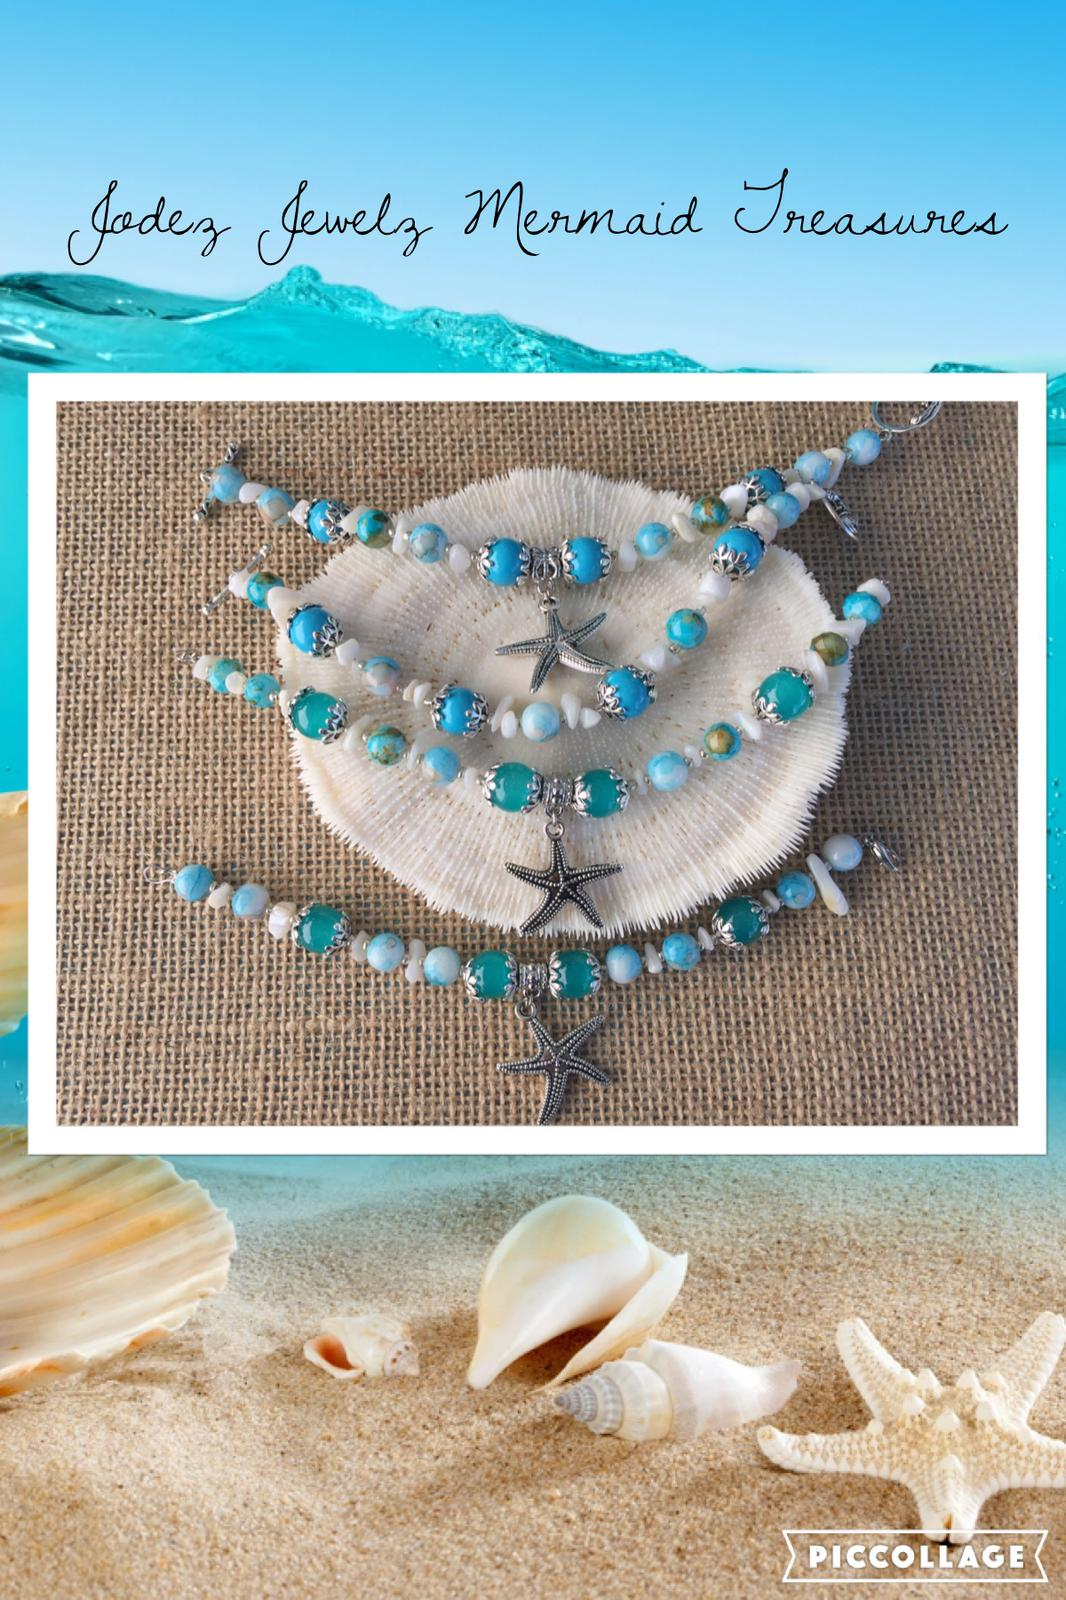 Beachy Glass and Gemstone Bracelets